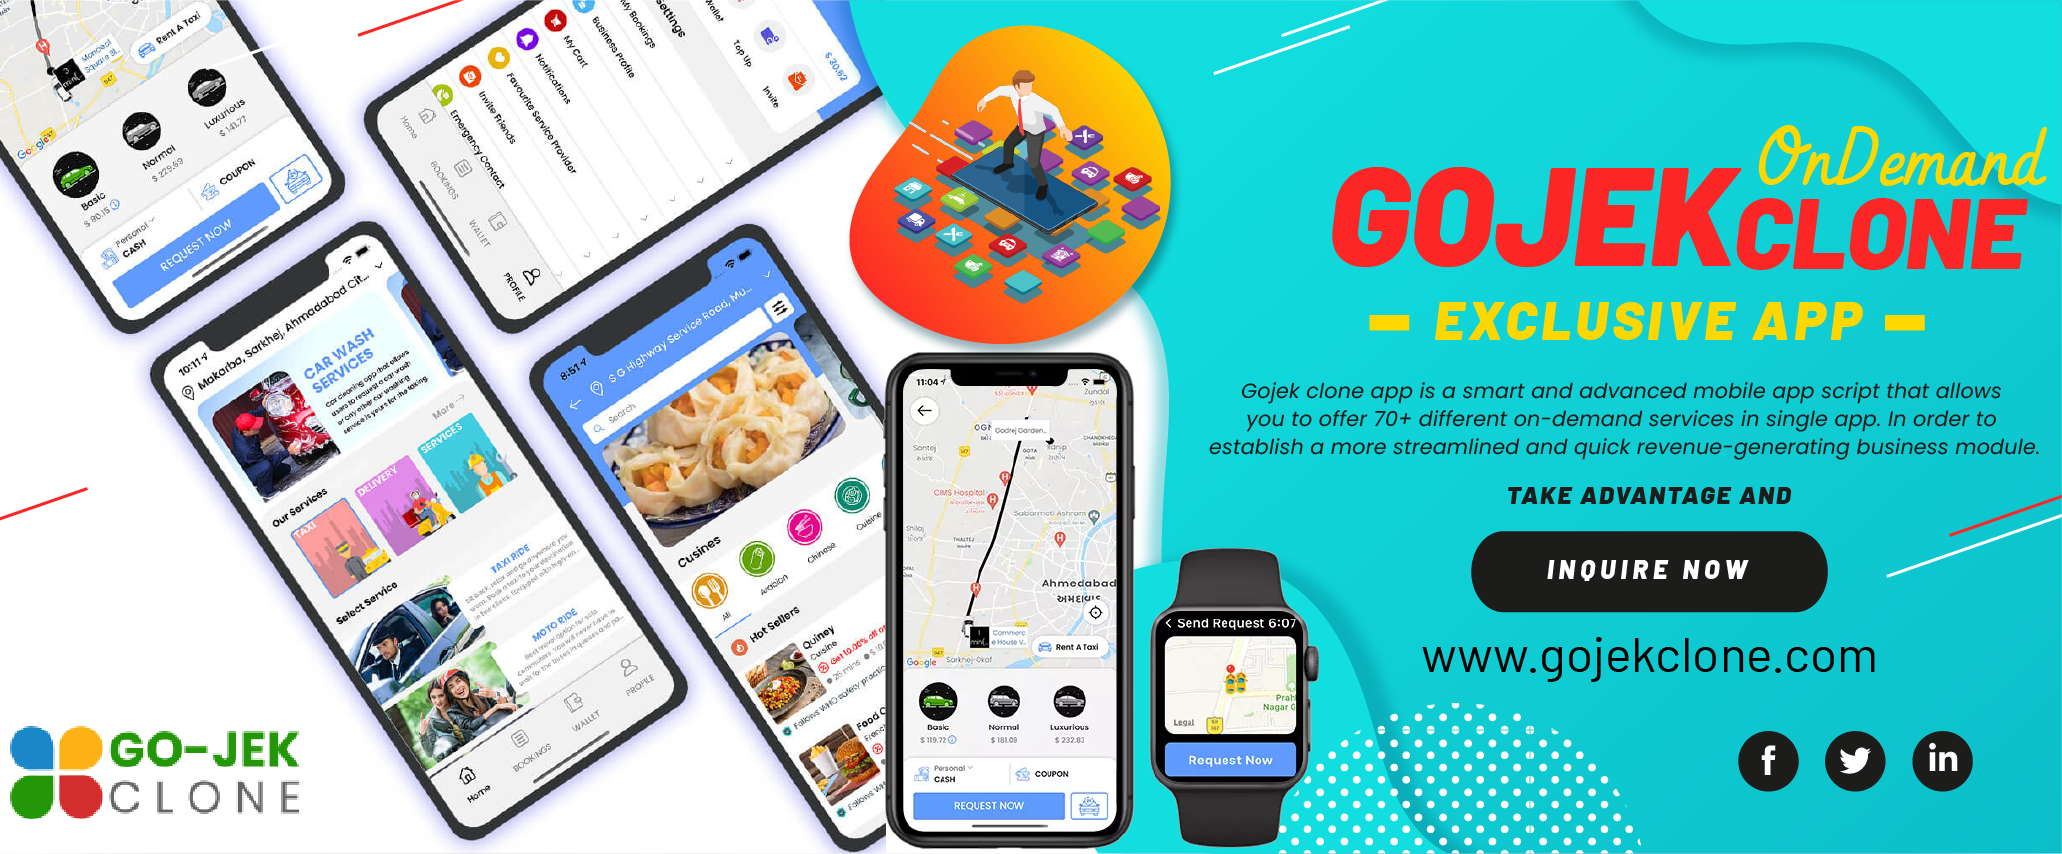 Launch Your Gojek Clone With New Features 2021 September